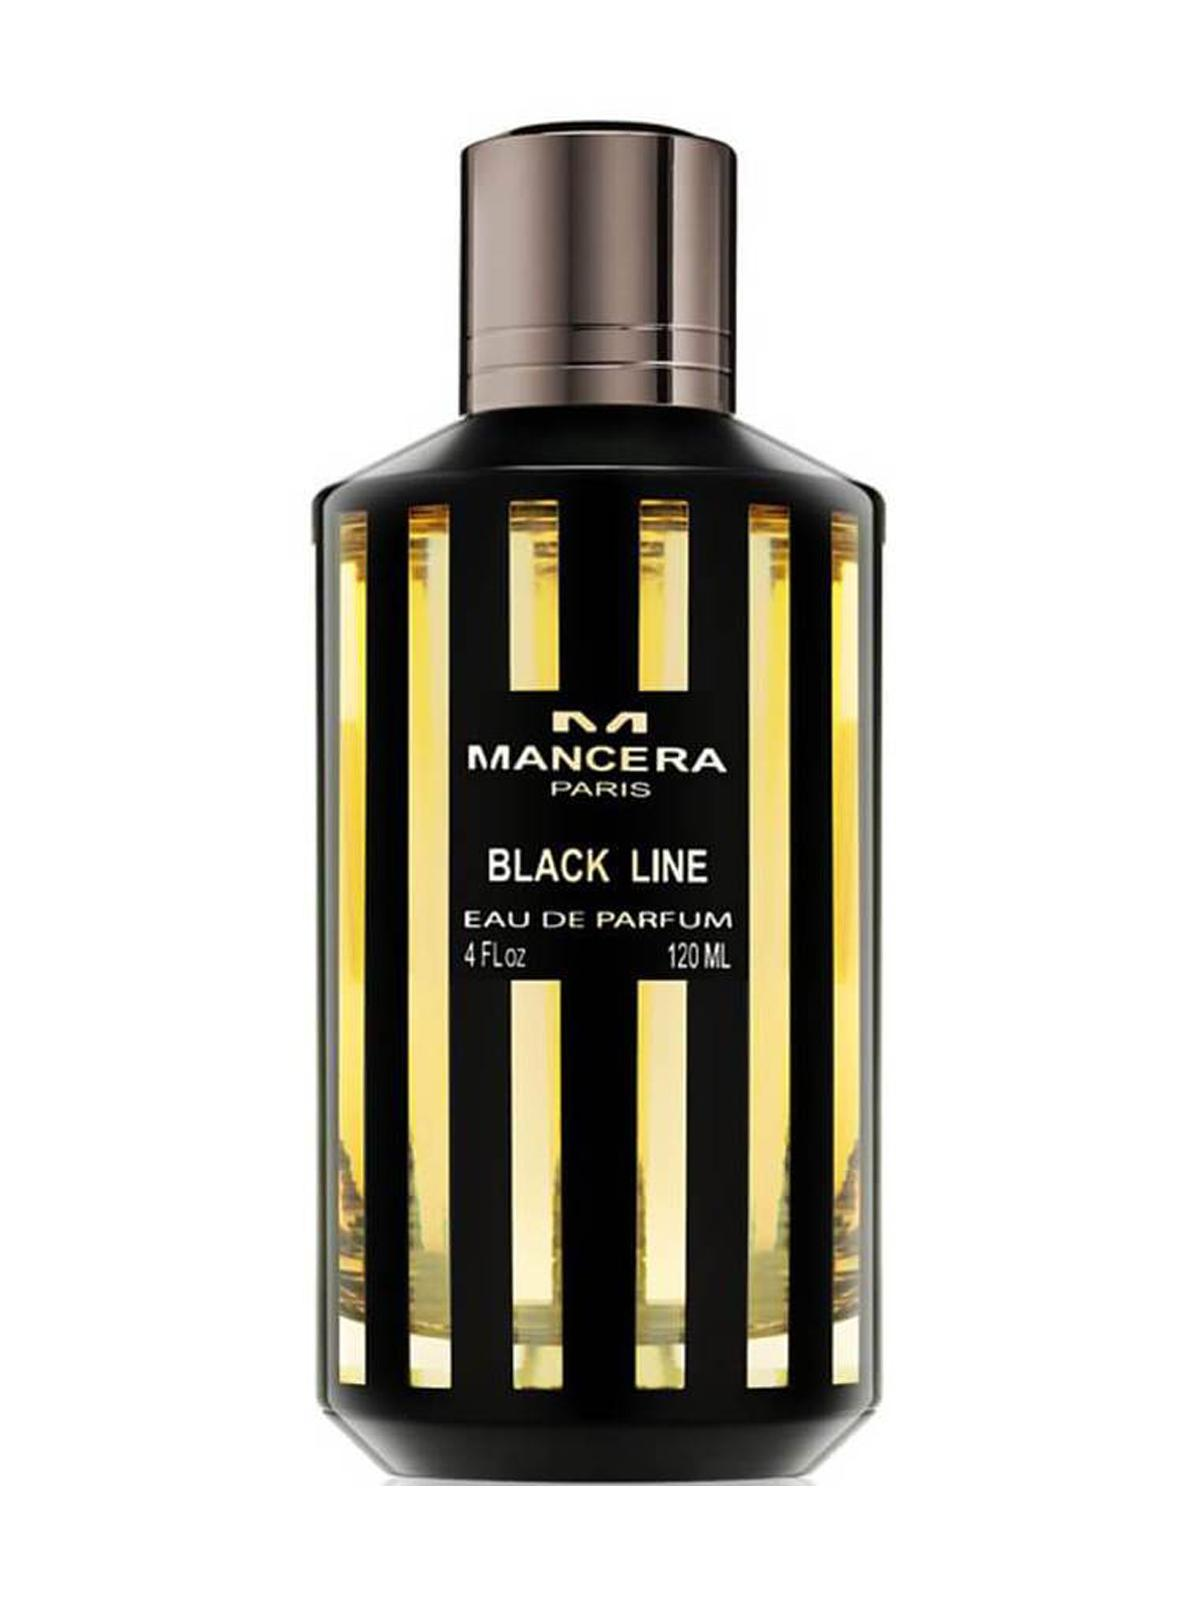 Mancera Black Line for Unisex Eau De Parfum 120ML